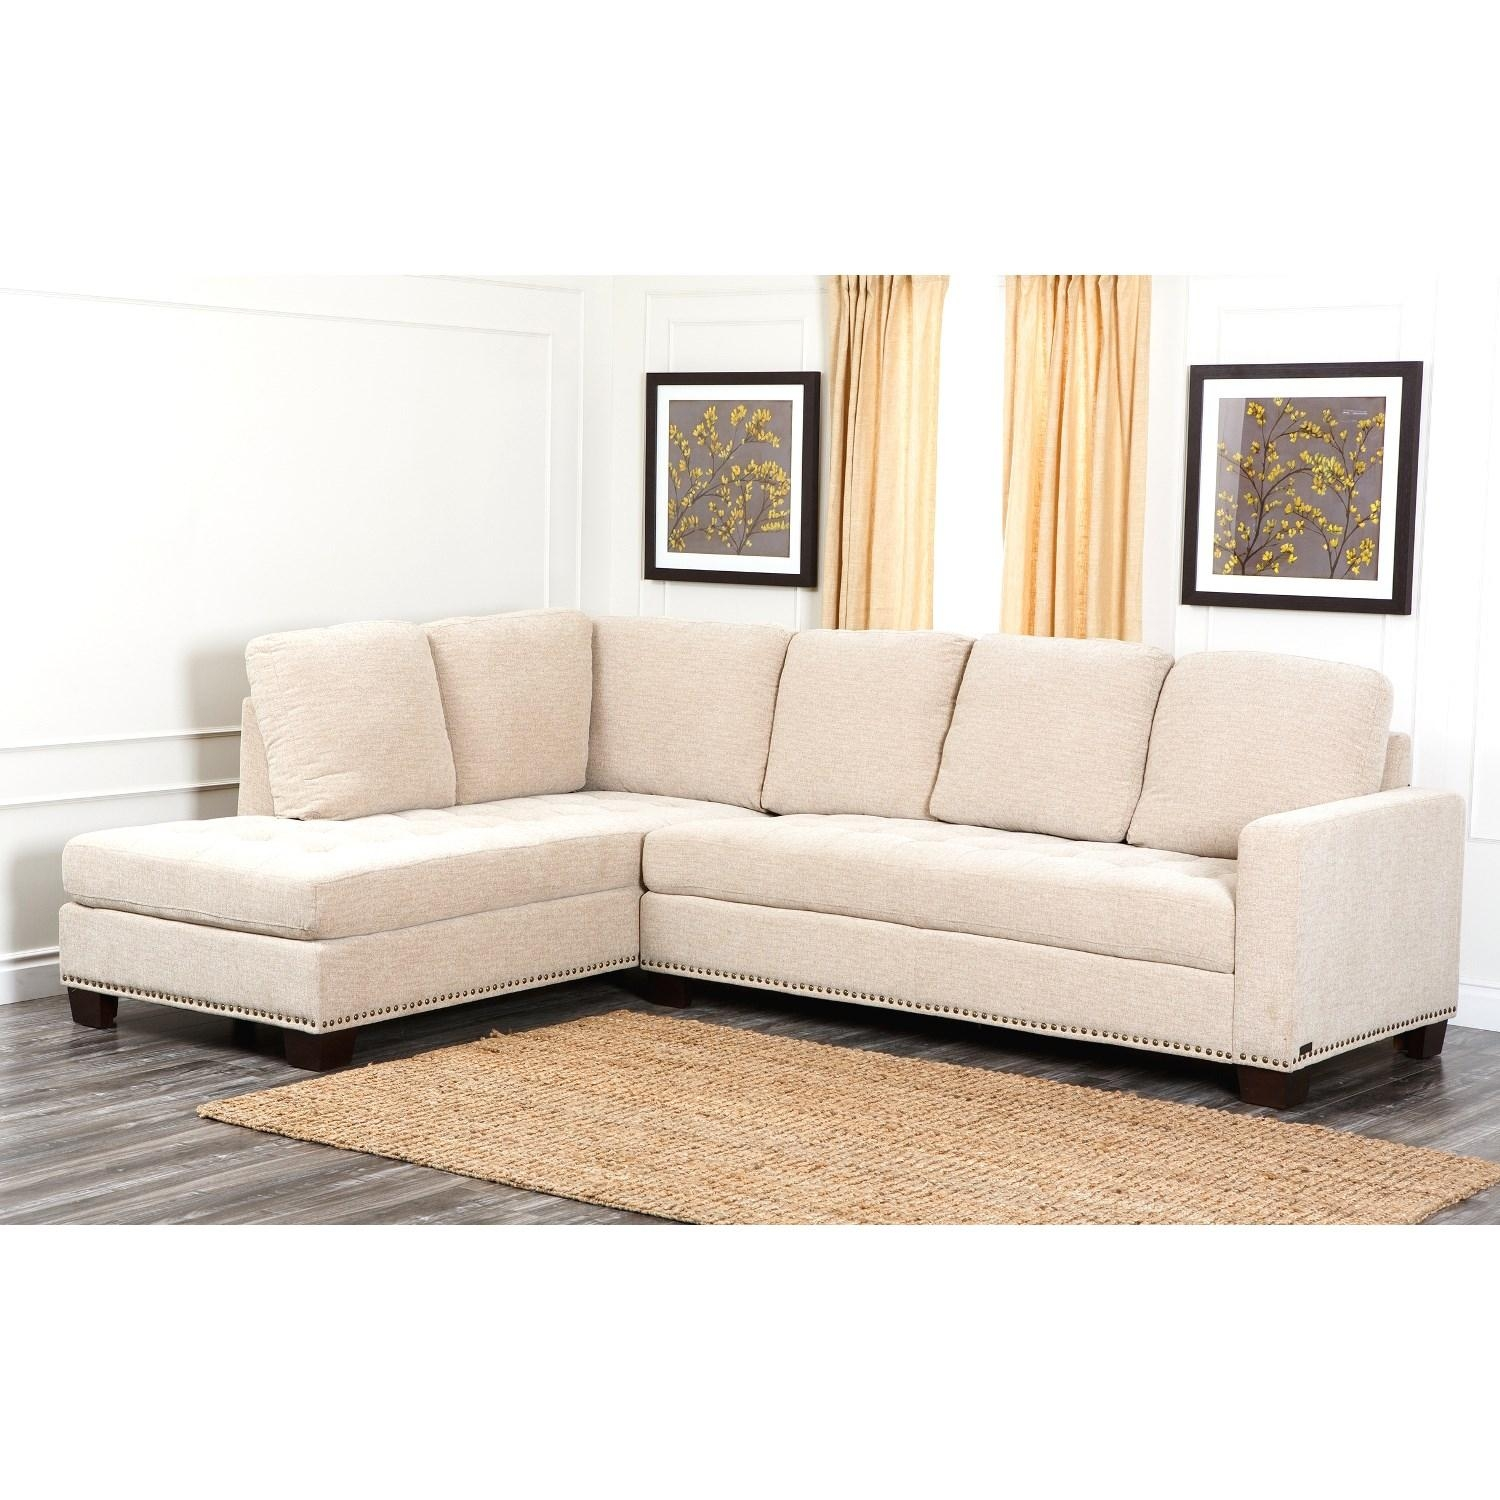 Abbyson Living Ci D10357 Crm Claridge Fabric Sectional In Cream Inside Abbyson Living Sectional (View 2 of 15)